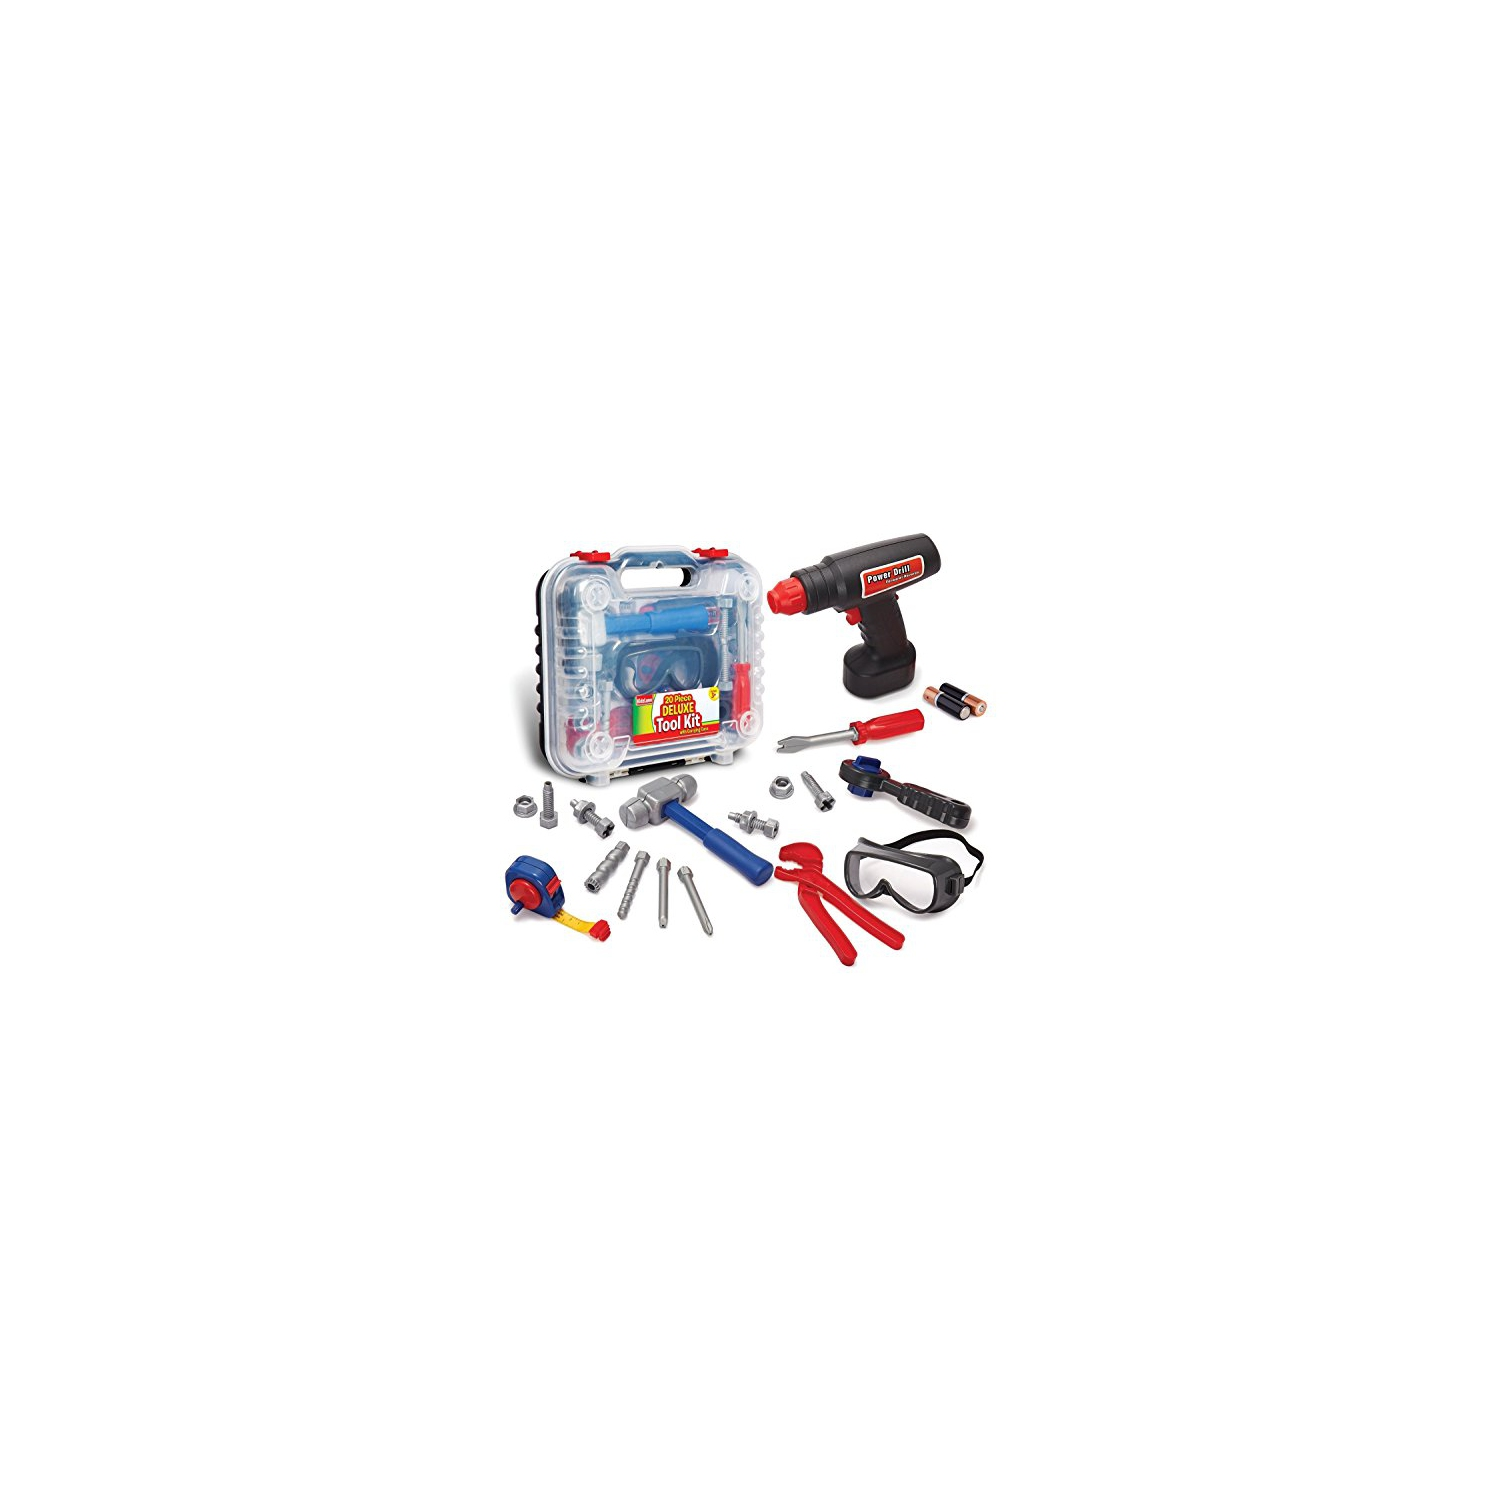 af3fc47b8c17 Durable Kids Tool Set With Electronic Cordless Drill And 18 Pretend Play  Construction Accessories